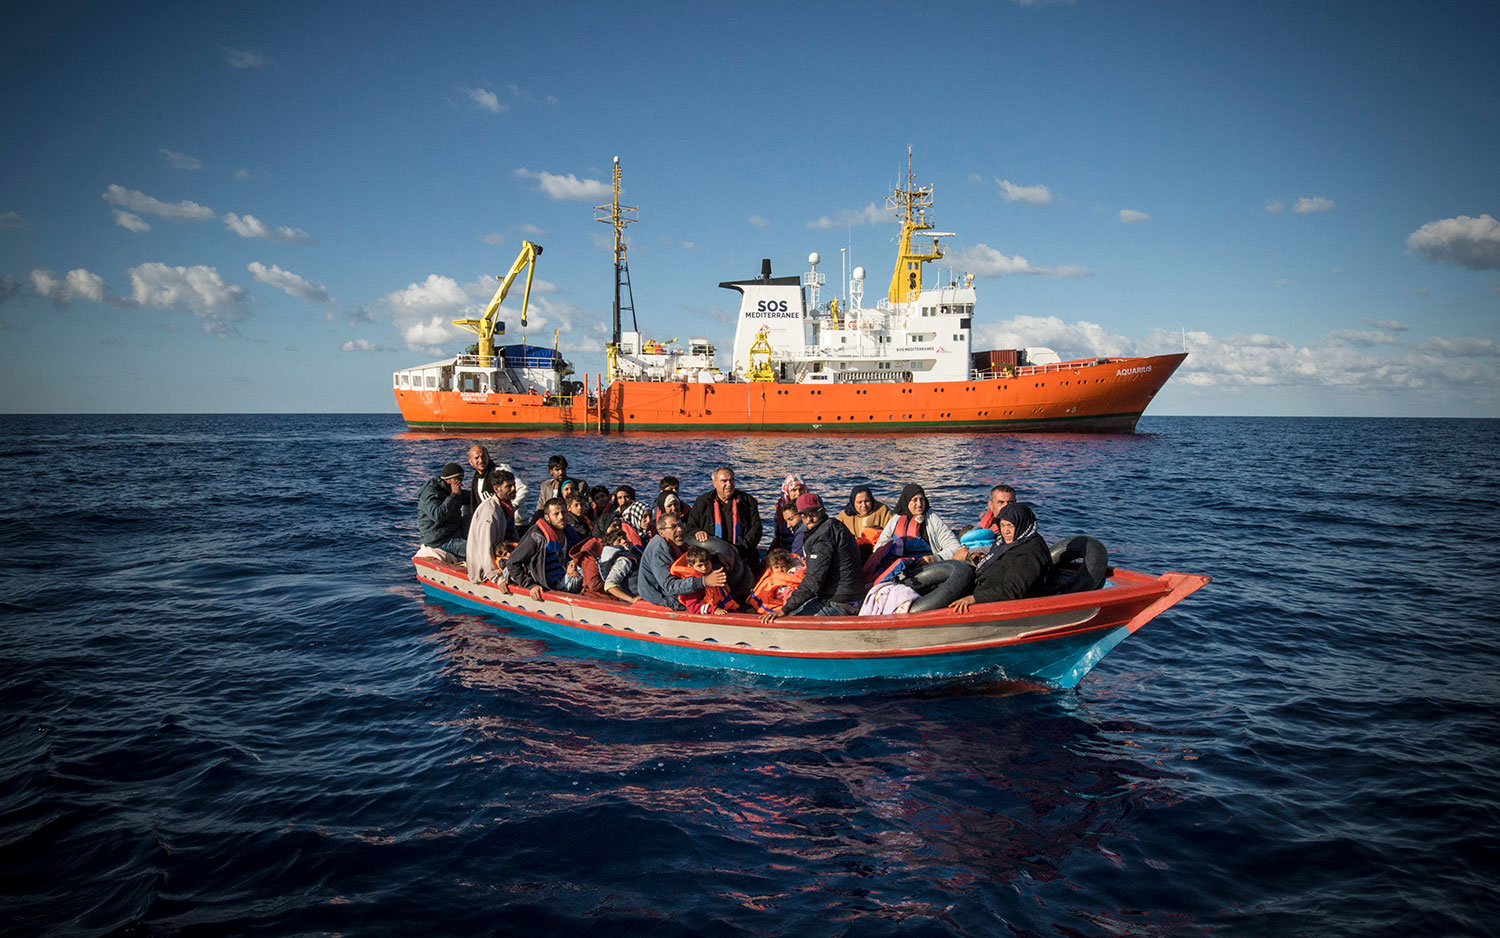 A wooden boat carrying 29 people, mainly Syrians, just before their rescue and transfer to the Aquarius. October 10, 2017.